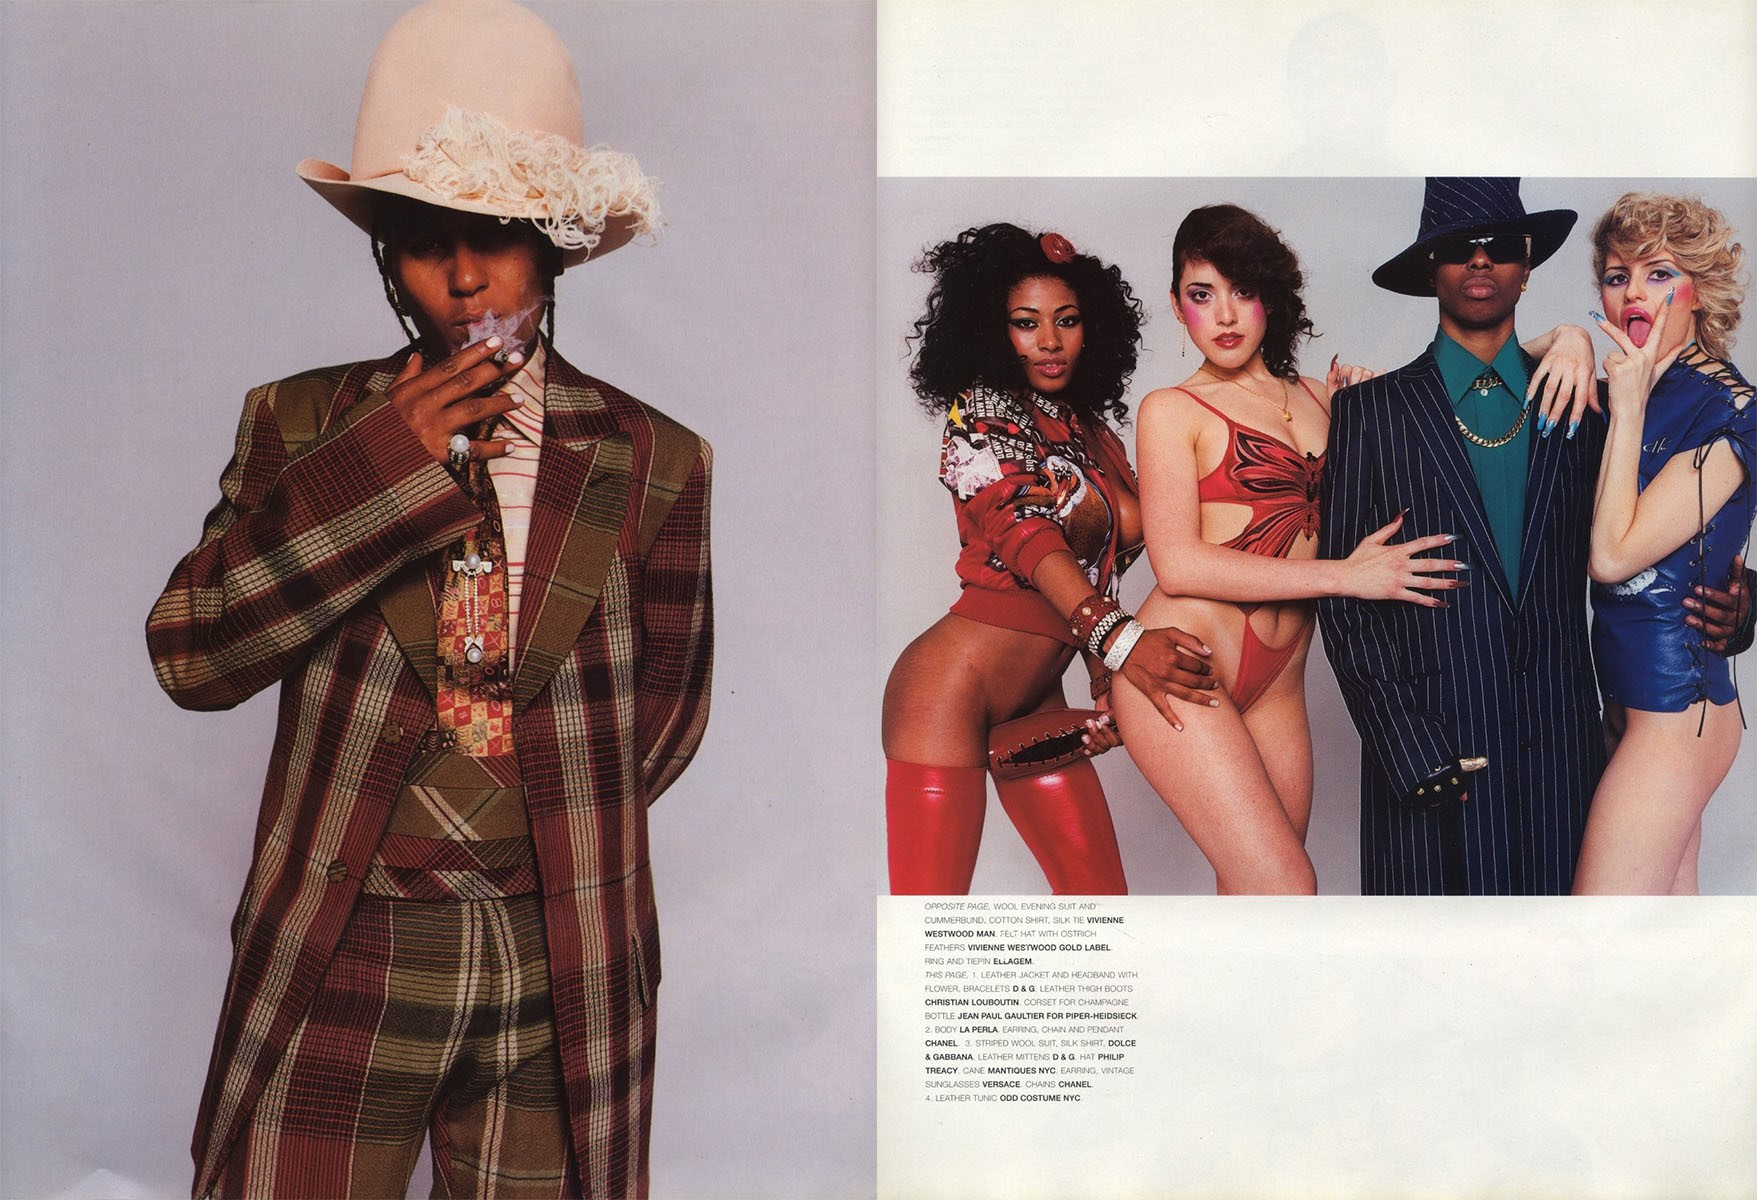 gang bang photography terry richardson stylist jason farrer vogue hommes international fw 2001 02 3